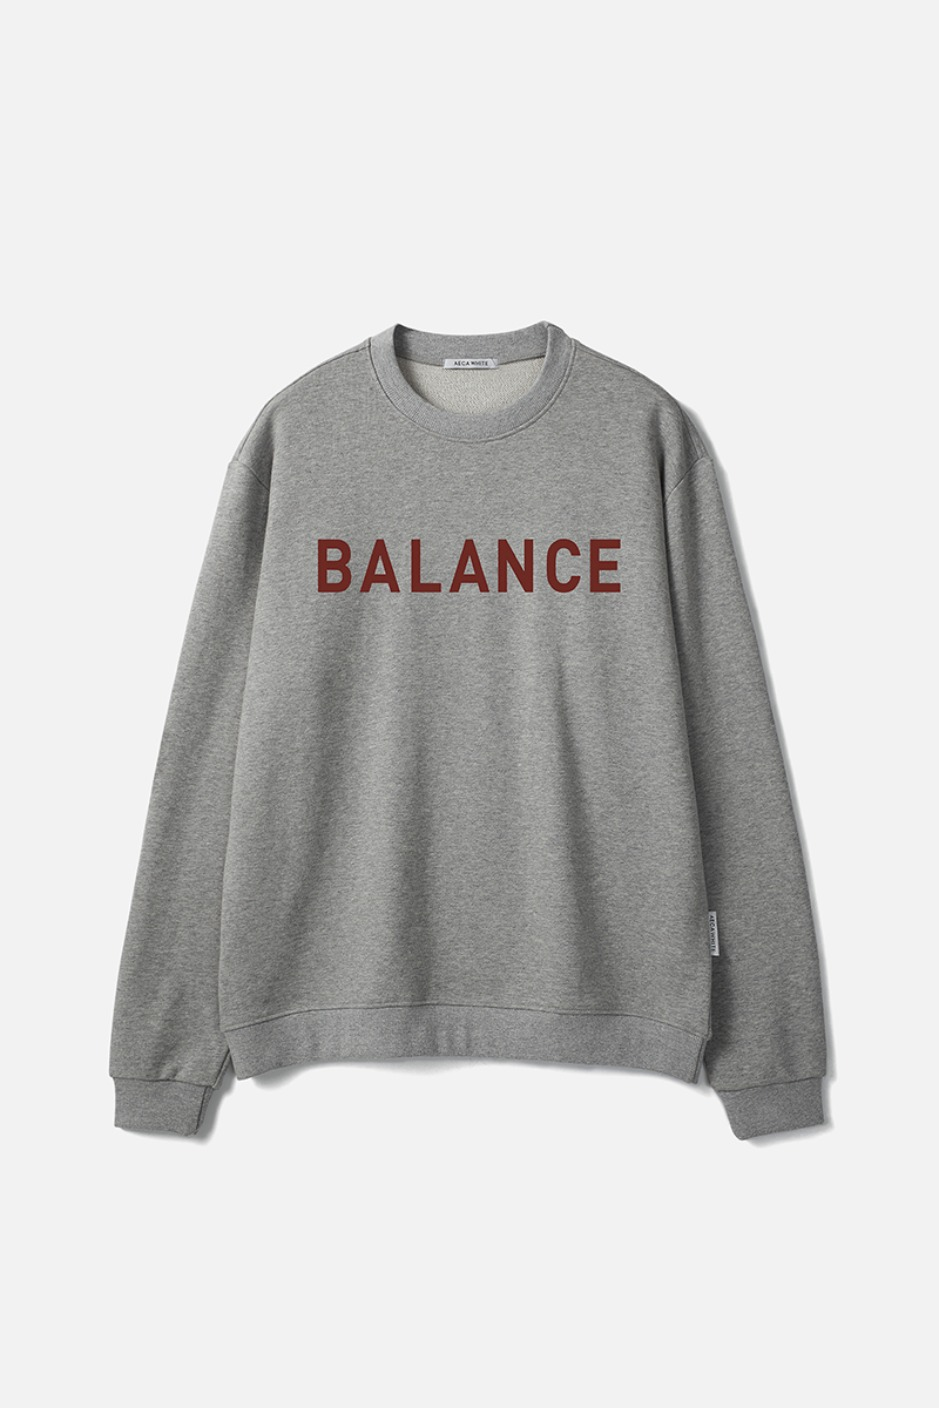 BALANCE SWEATSHIRT-GREY